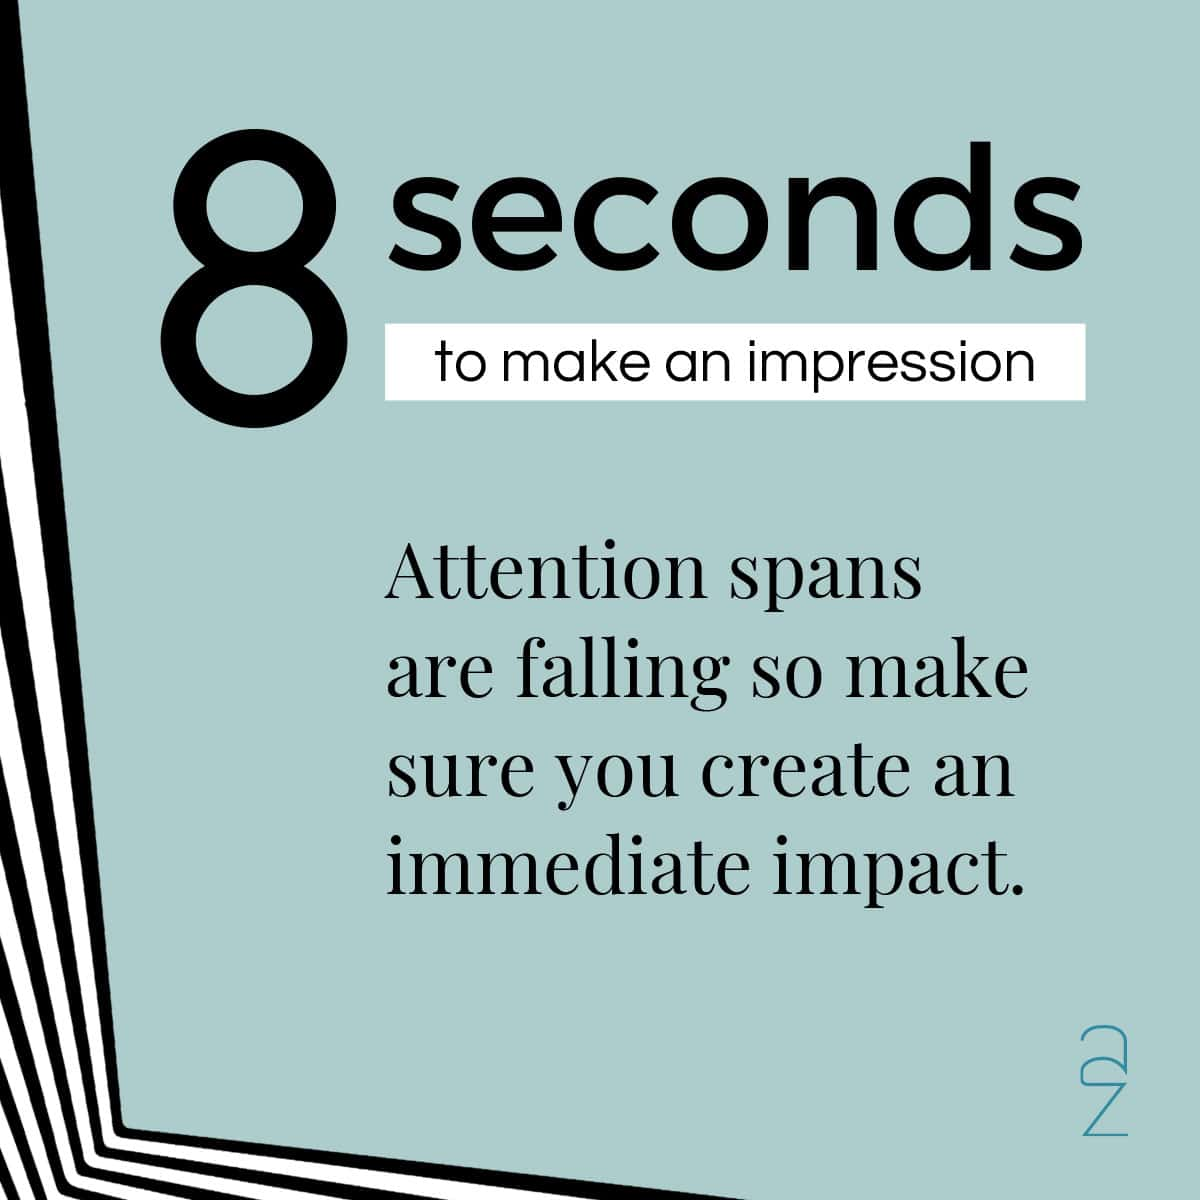 why does graphic design matter? you only have 8 seconds to make an impression